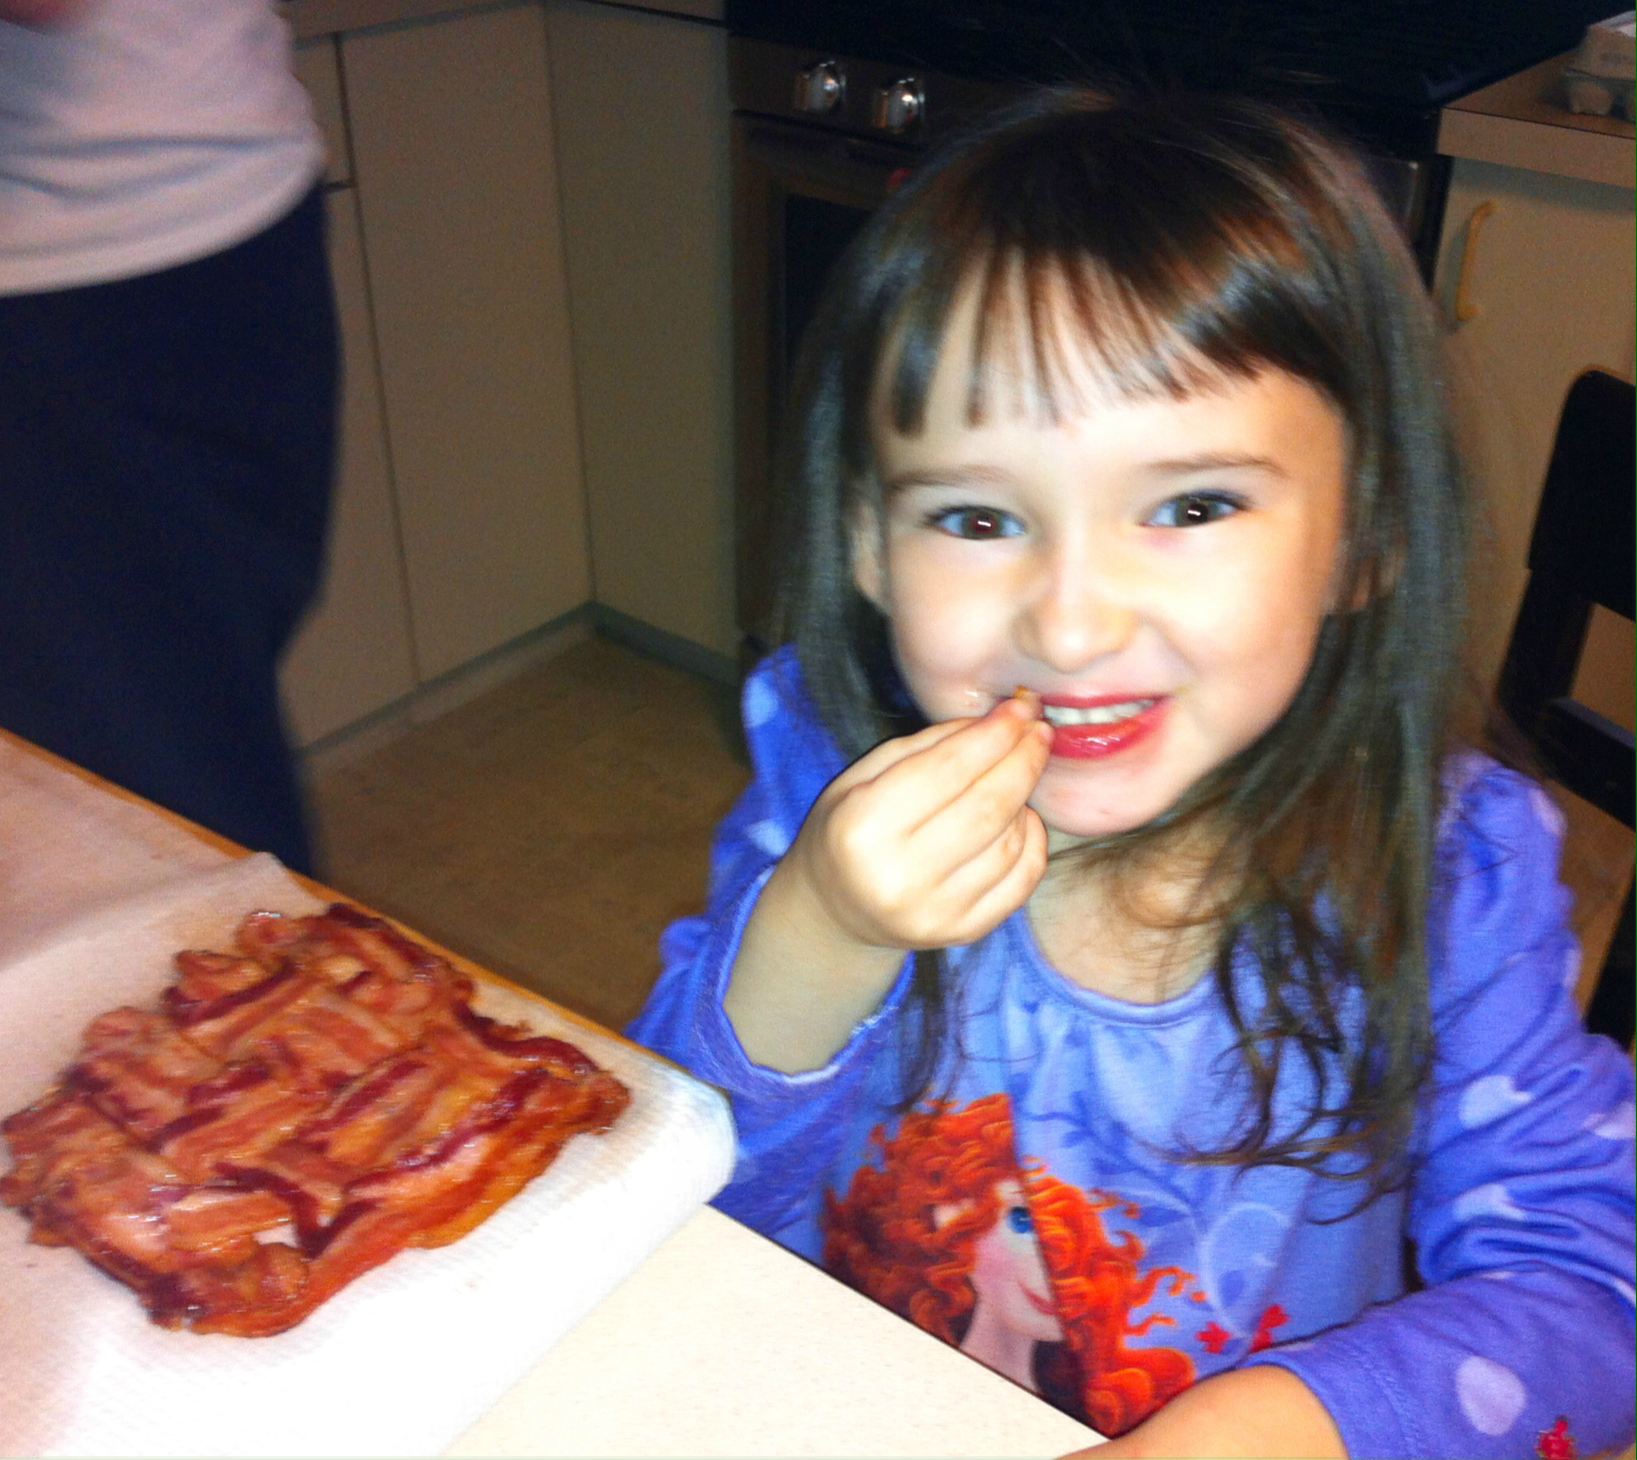 What does exactly does Emma eating tasty bacon have to do with Coach Daddy?